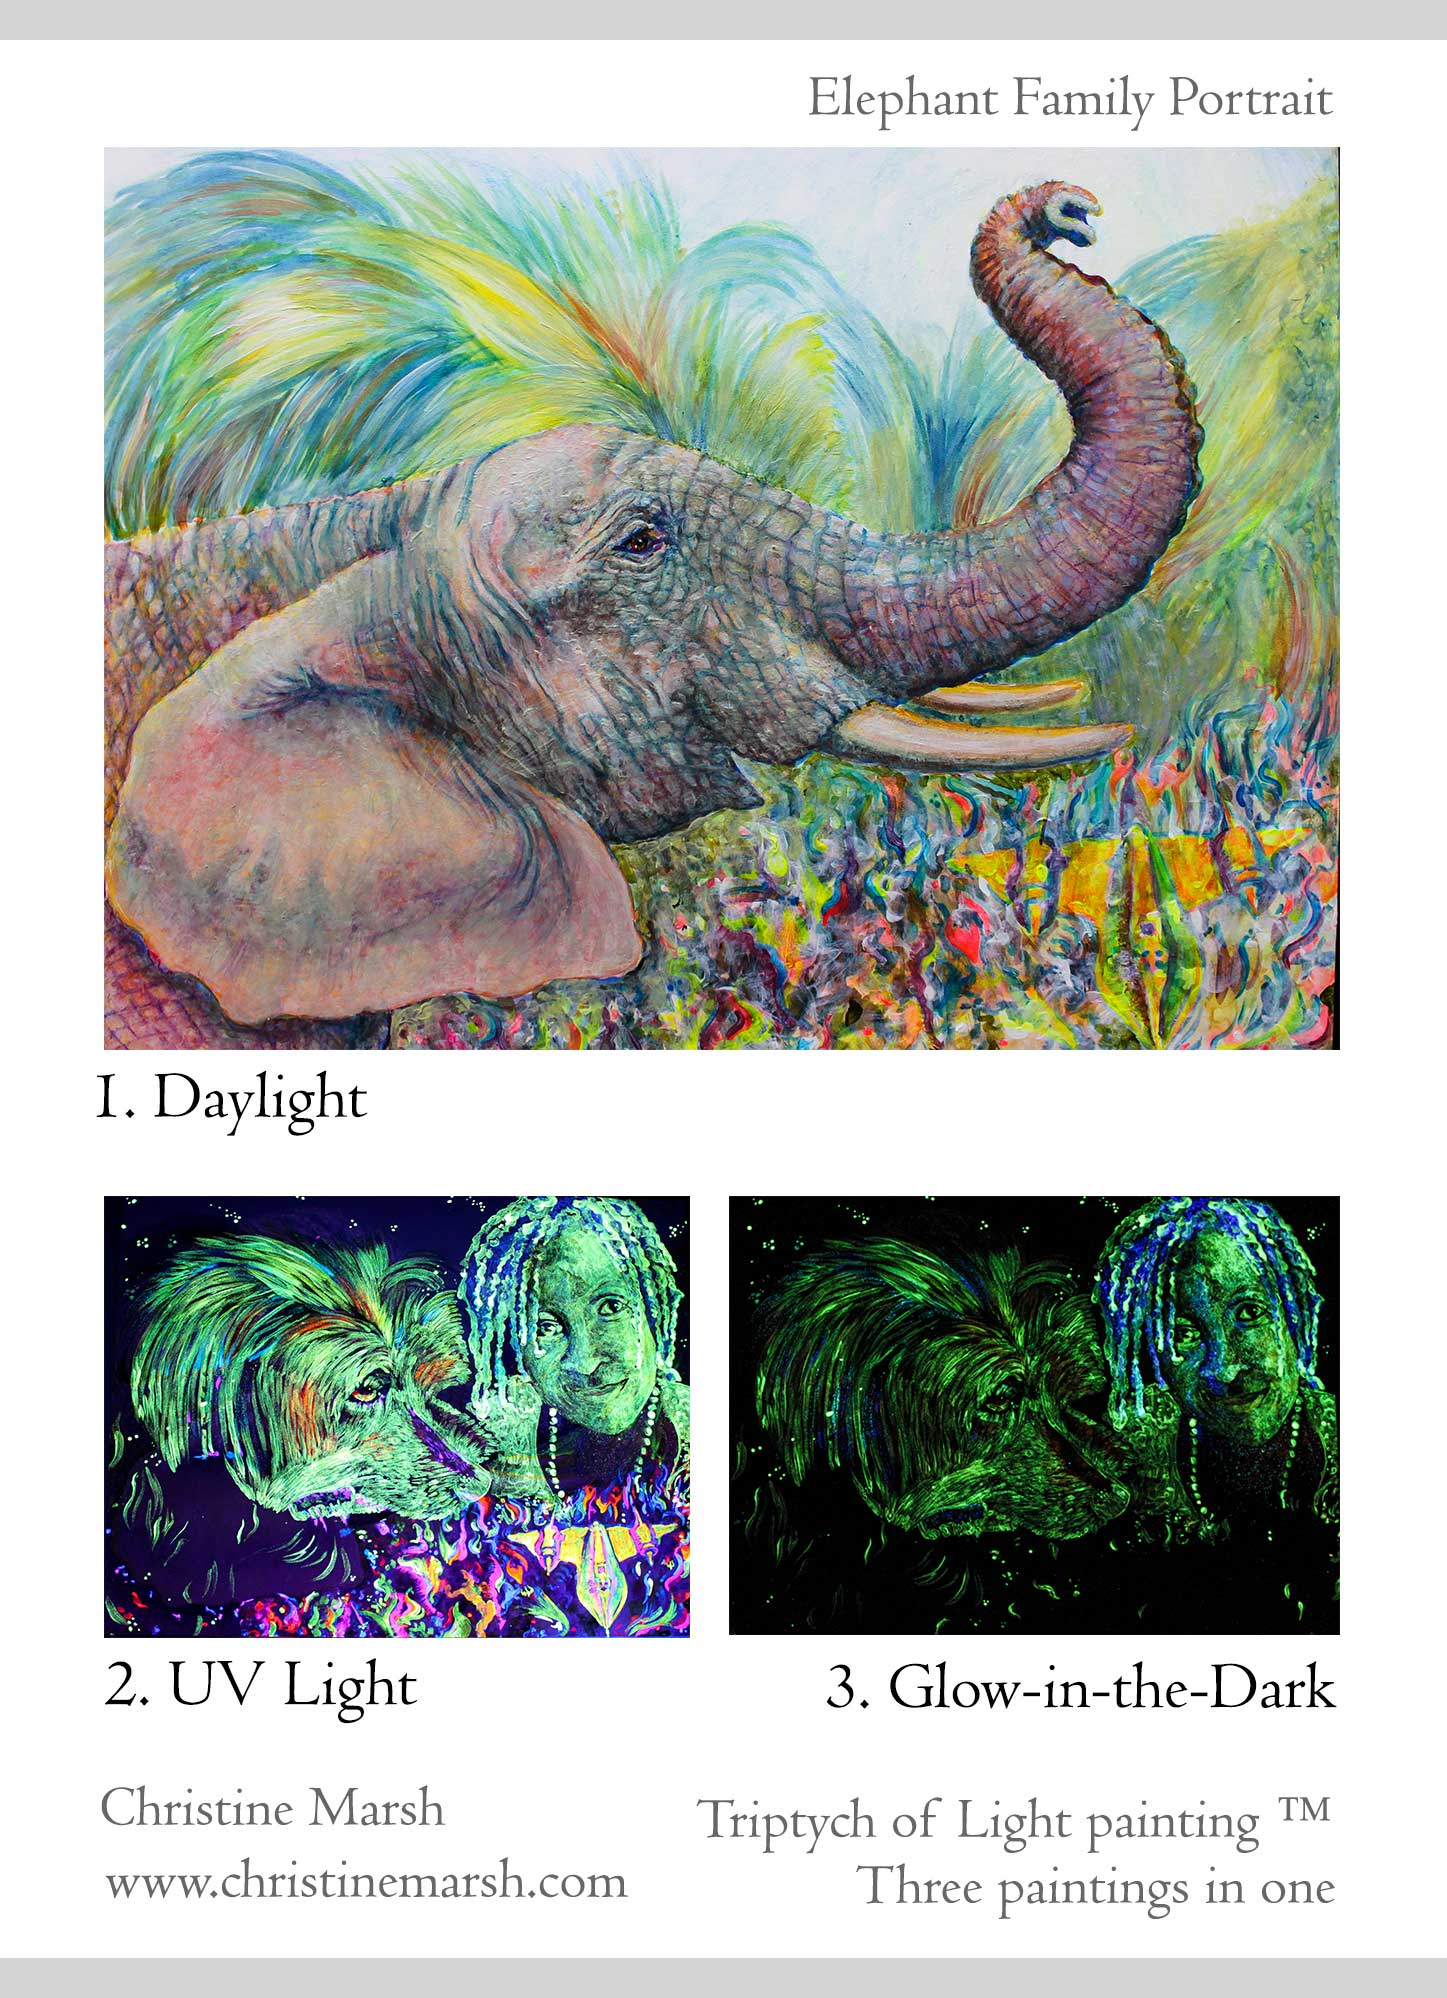 Triptych of Light - Elephant Family Portrait by Christine Marsh